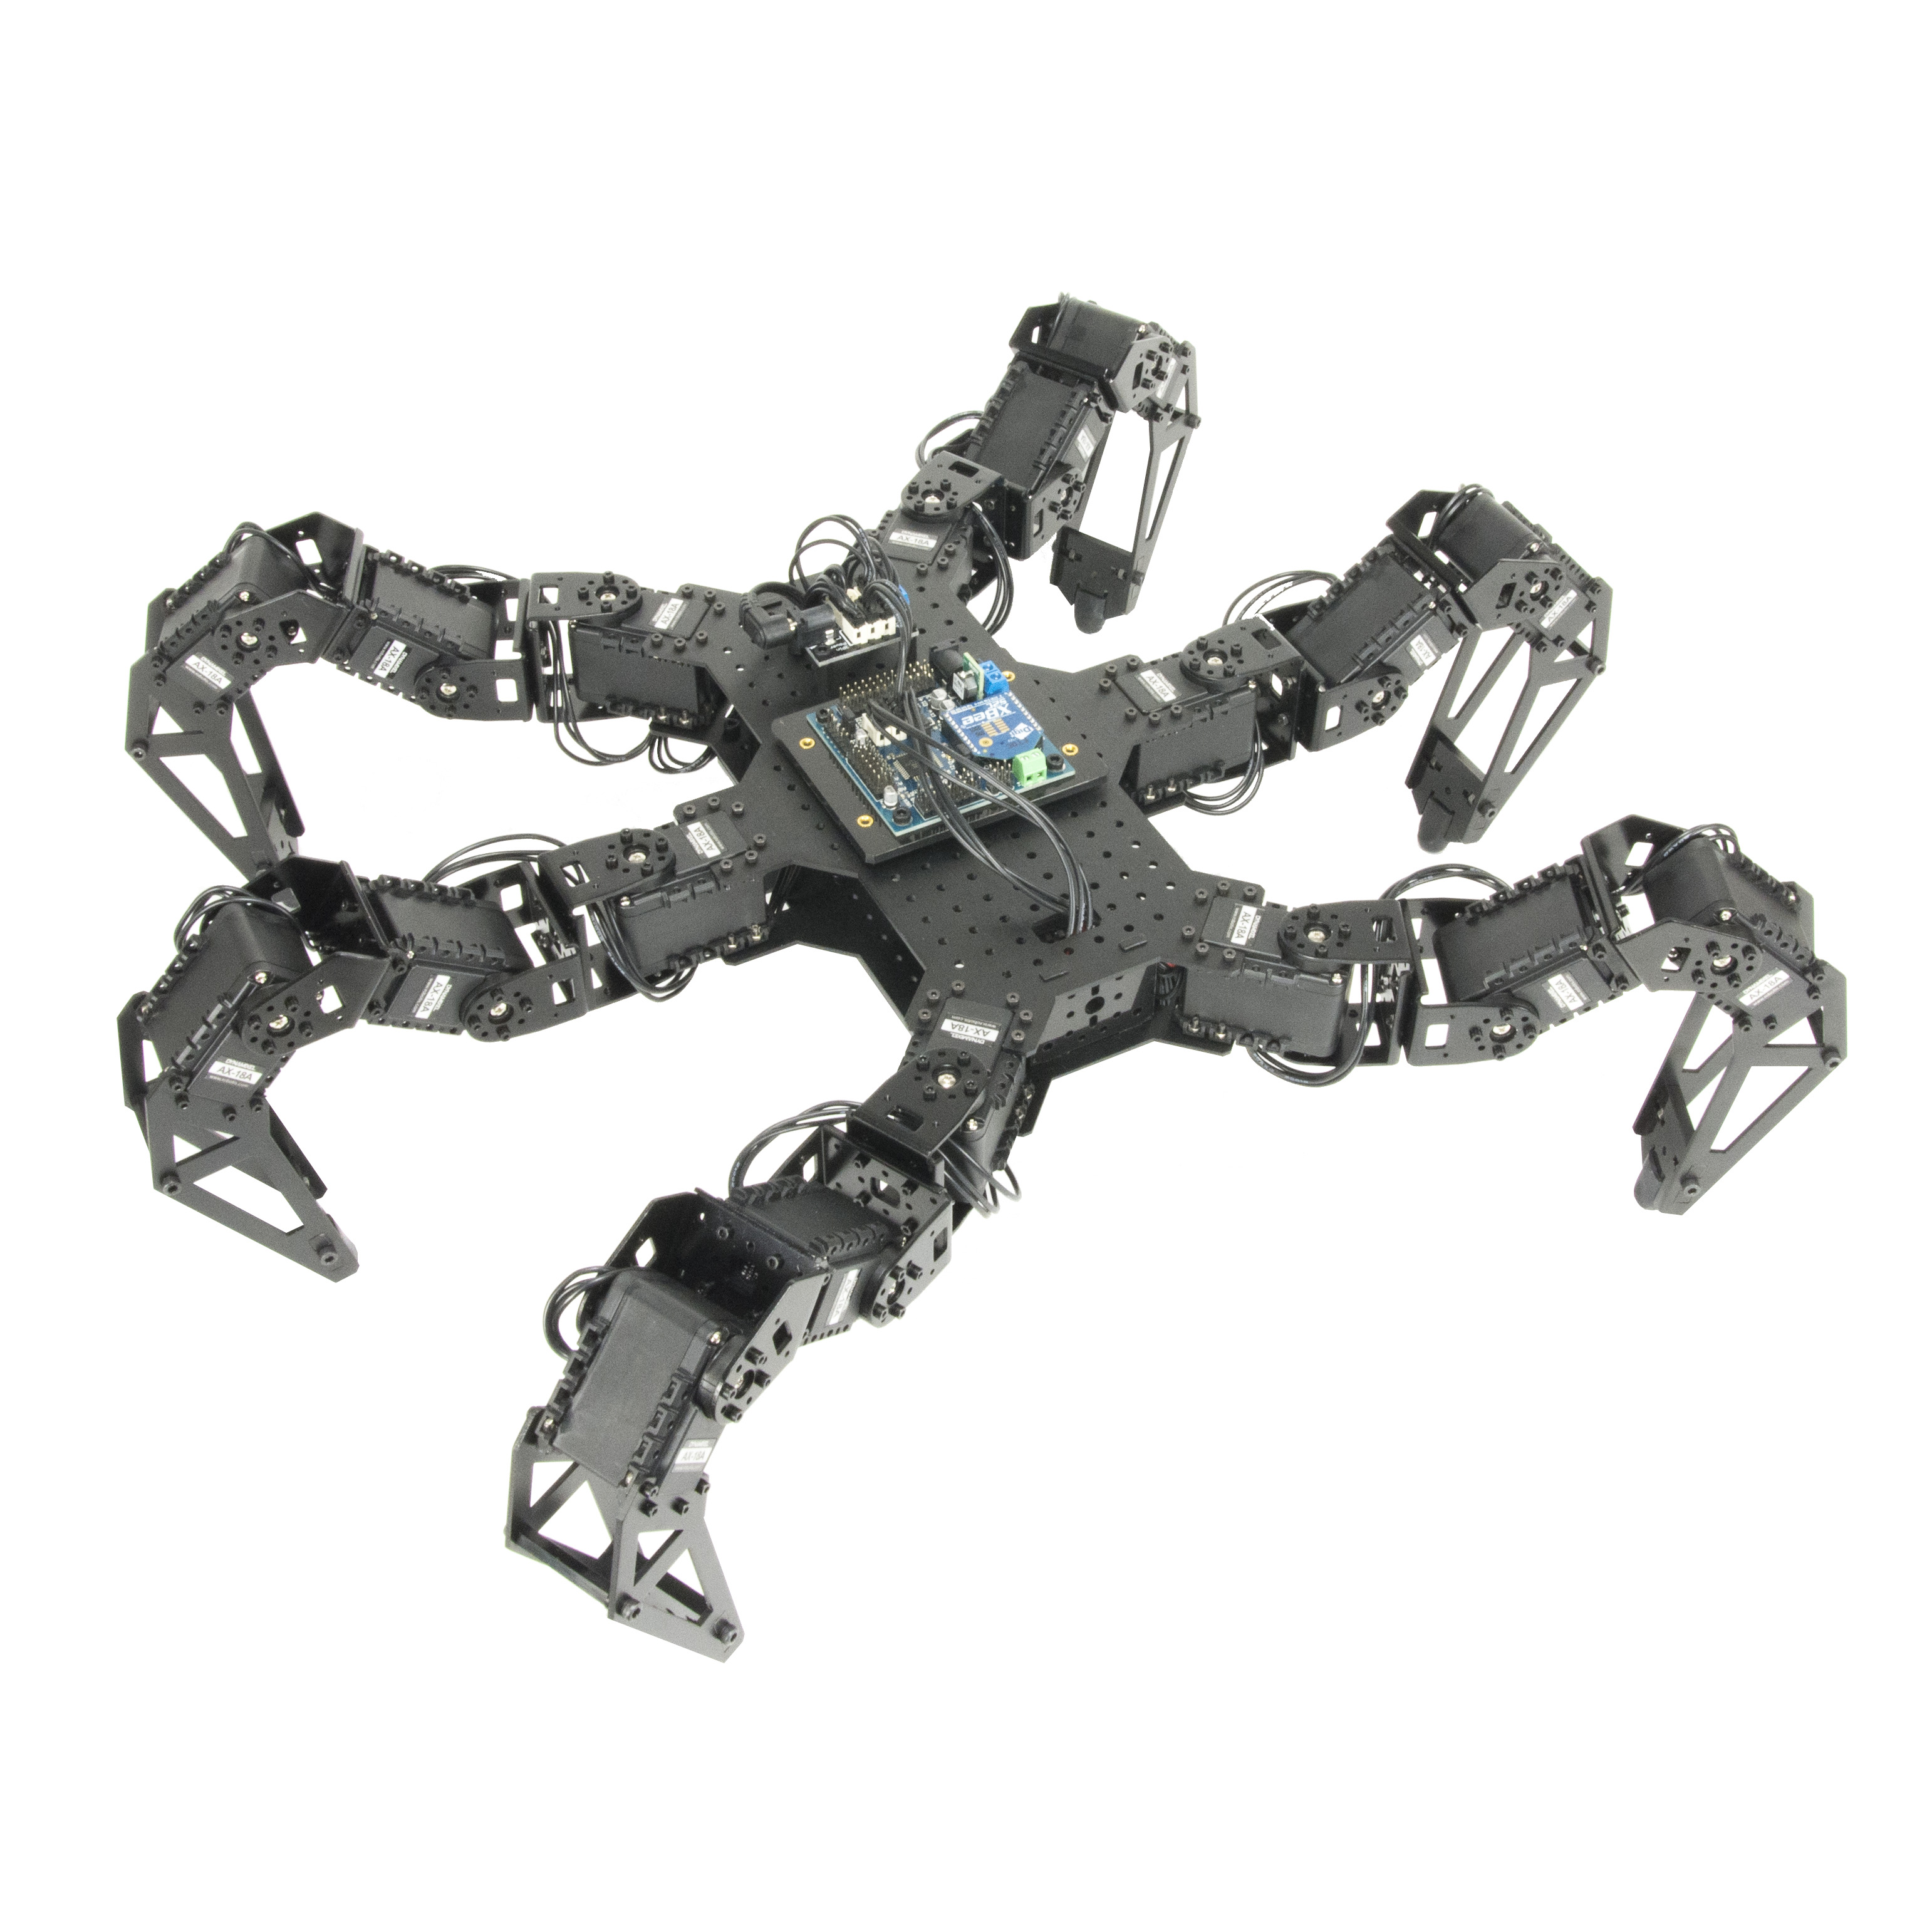 PhantomX AX Metal Hexapod Mark III Kit - KIT-PXC-HEX-MK3-AX12